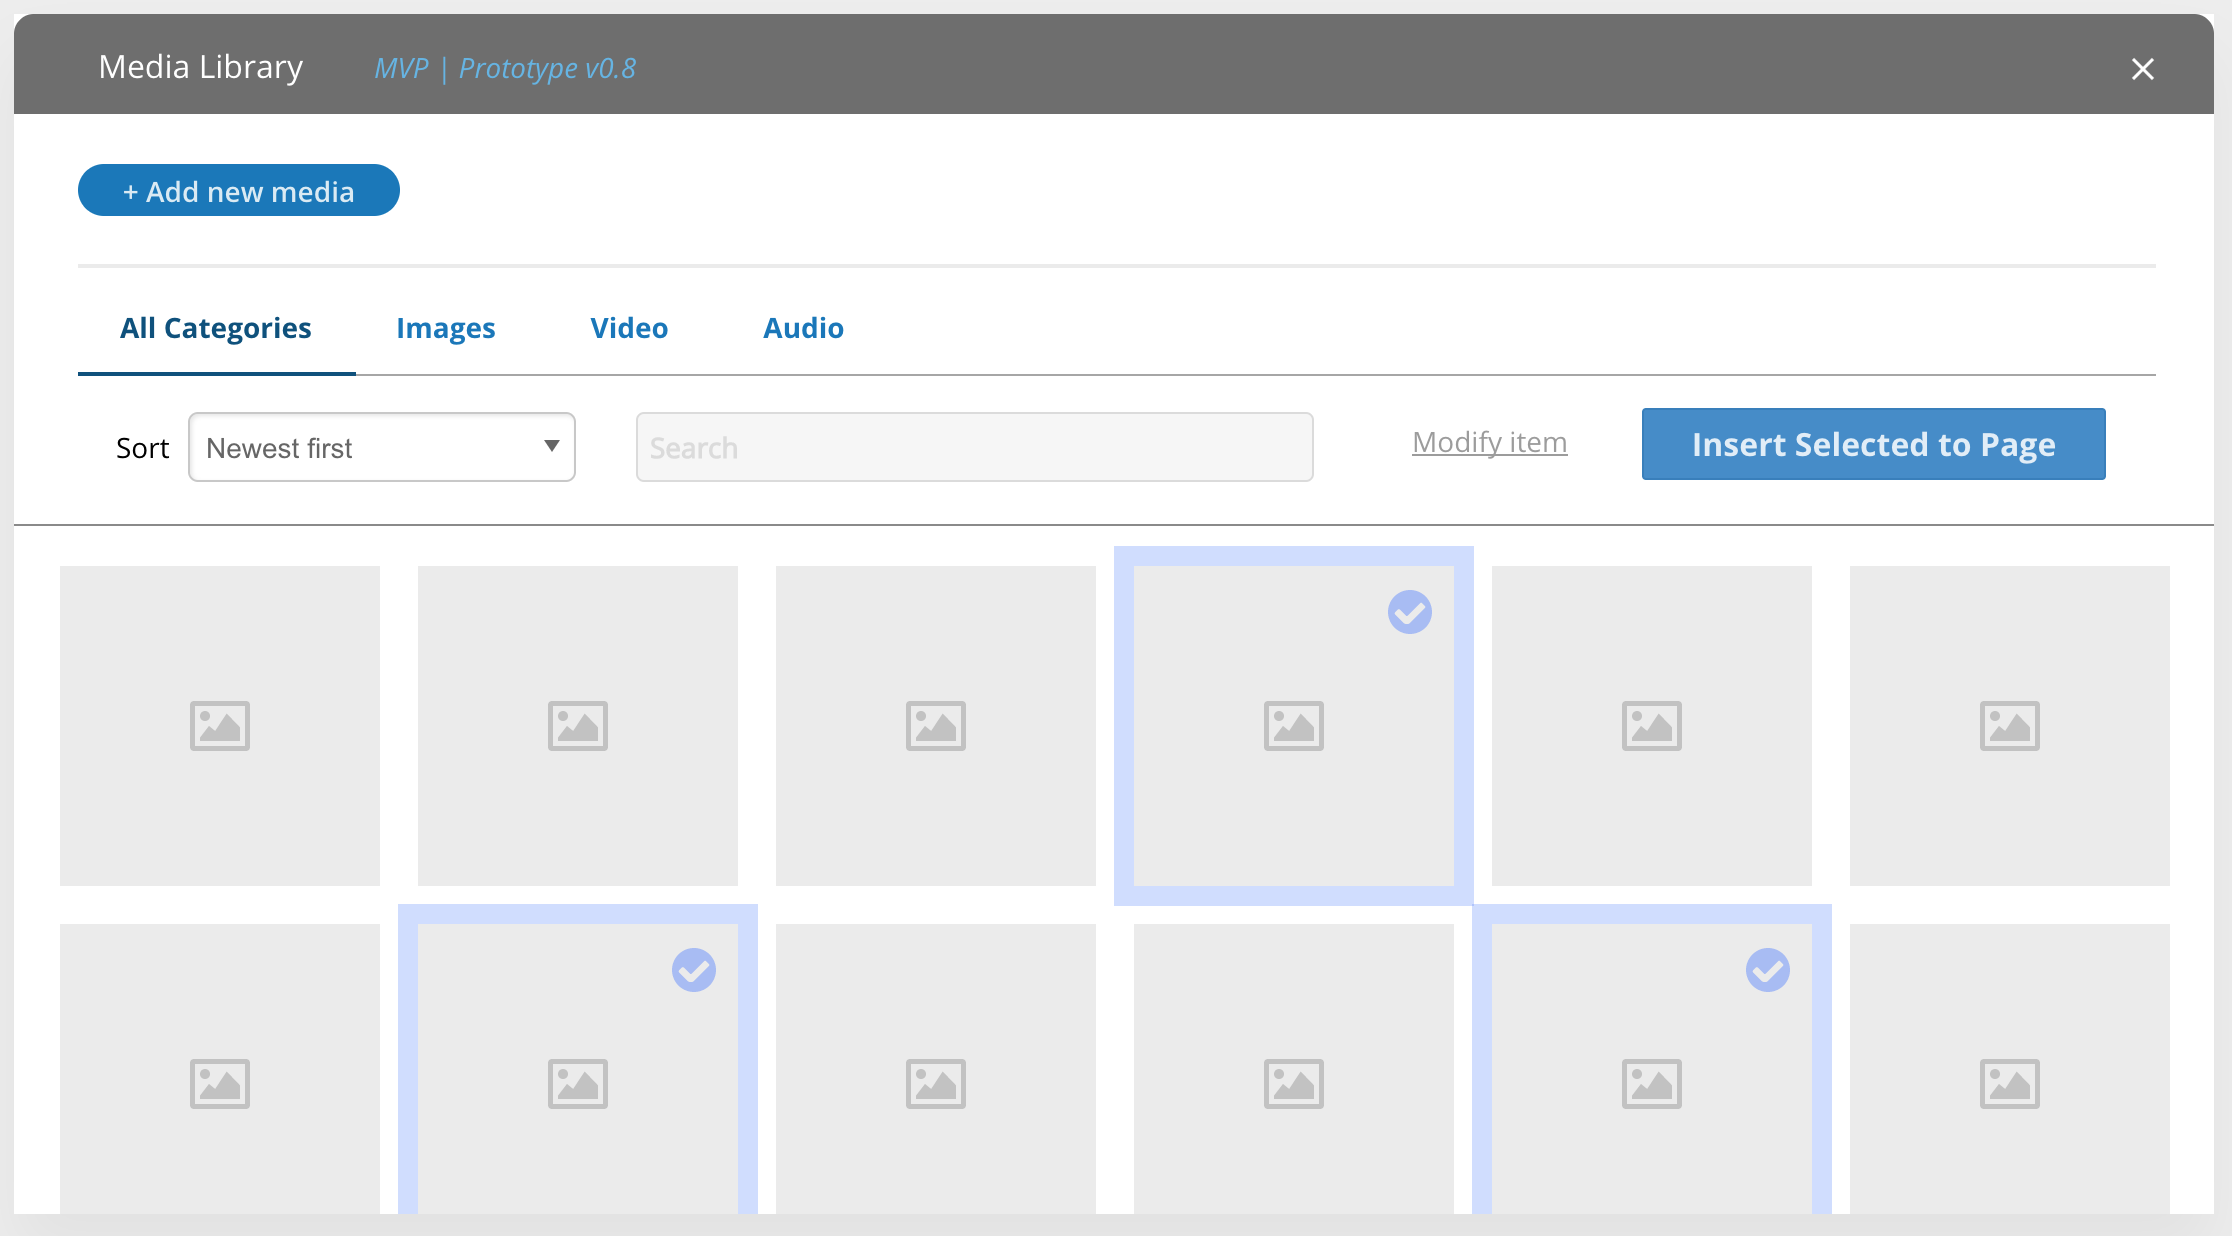 prototype] Create design for a Media Library [#2796001